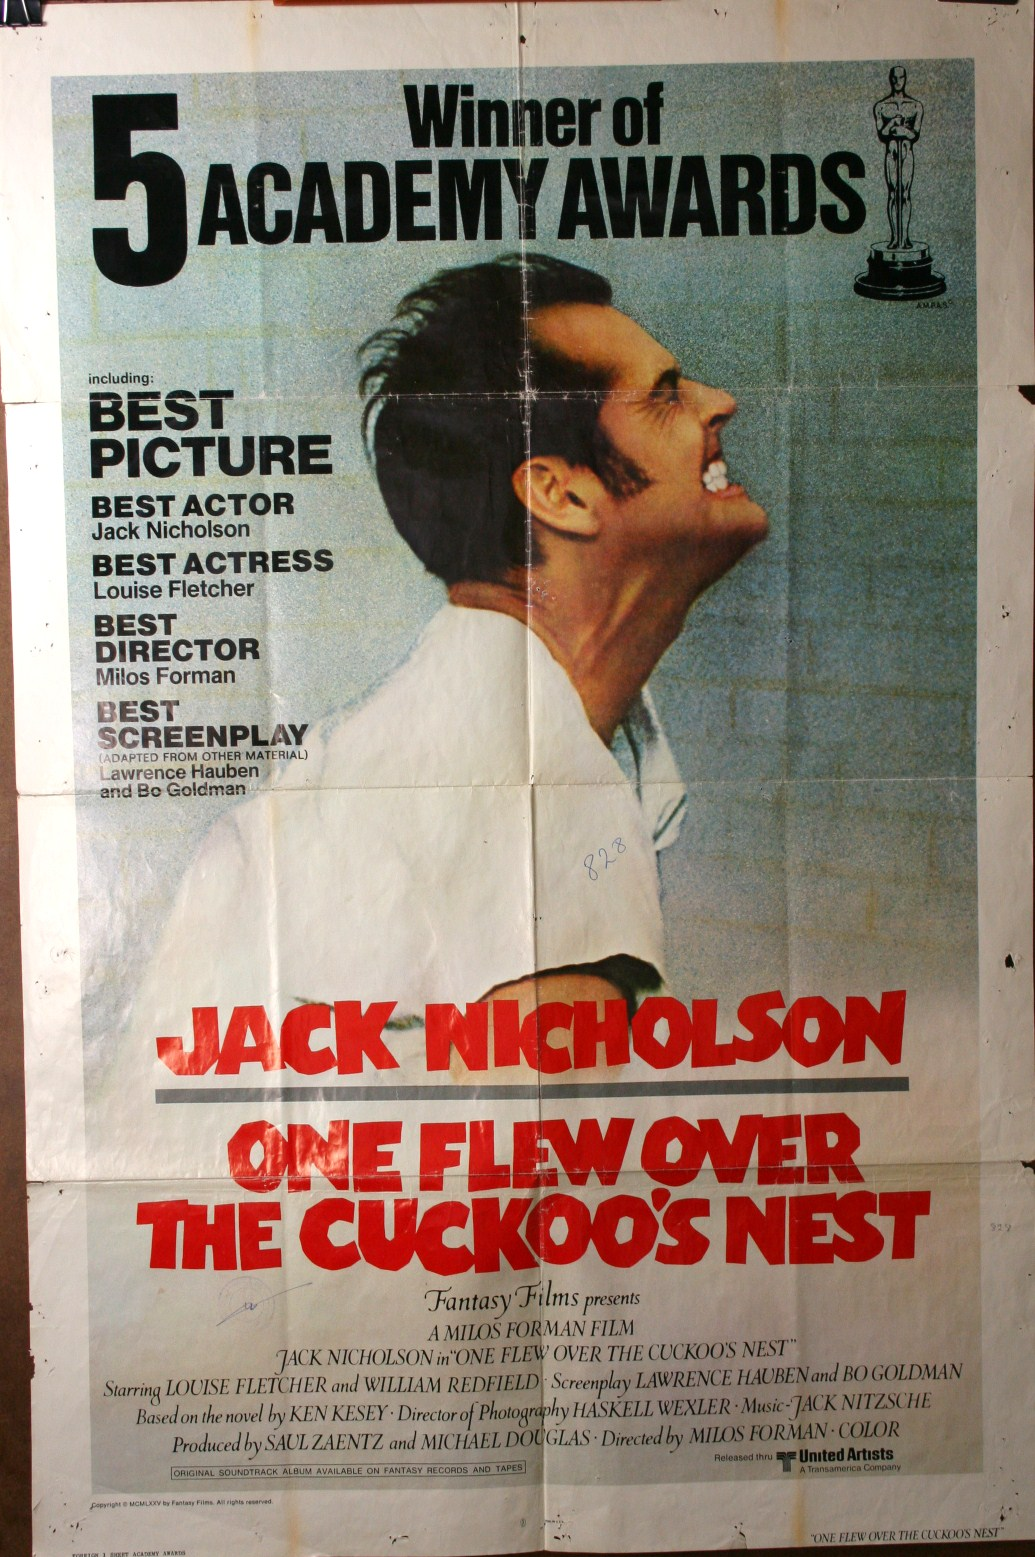 one flew over the cuckoos nest Free summary and analysis of the events in ken kesey's one flew over the cuckoo's nest that won't make you snore we promise.